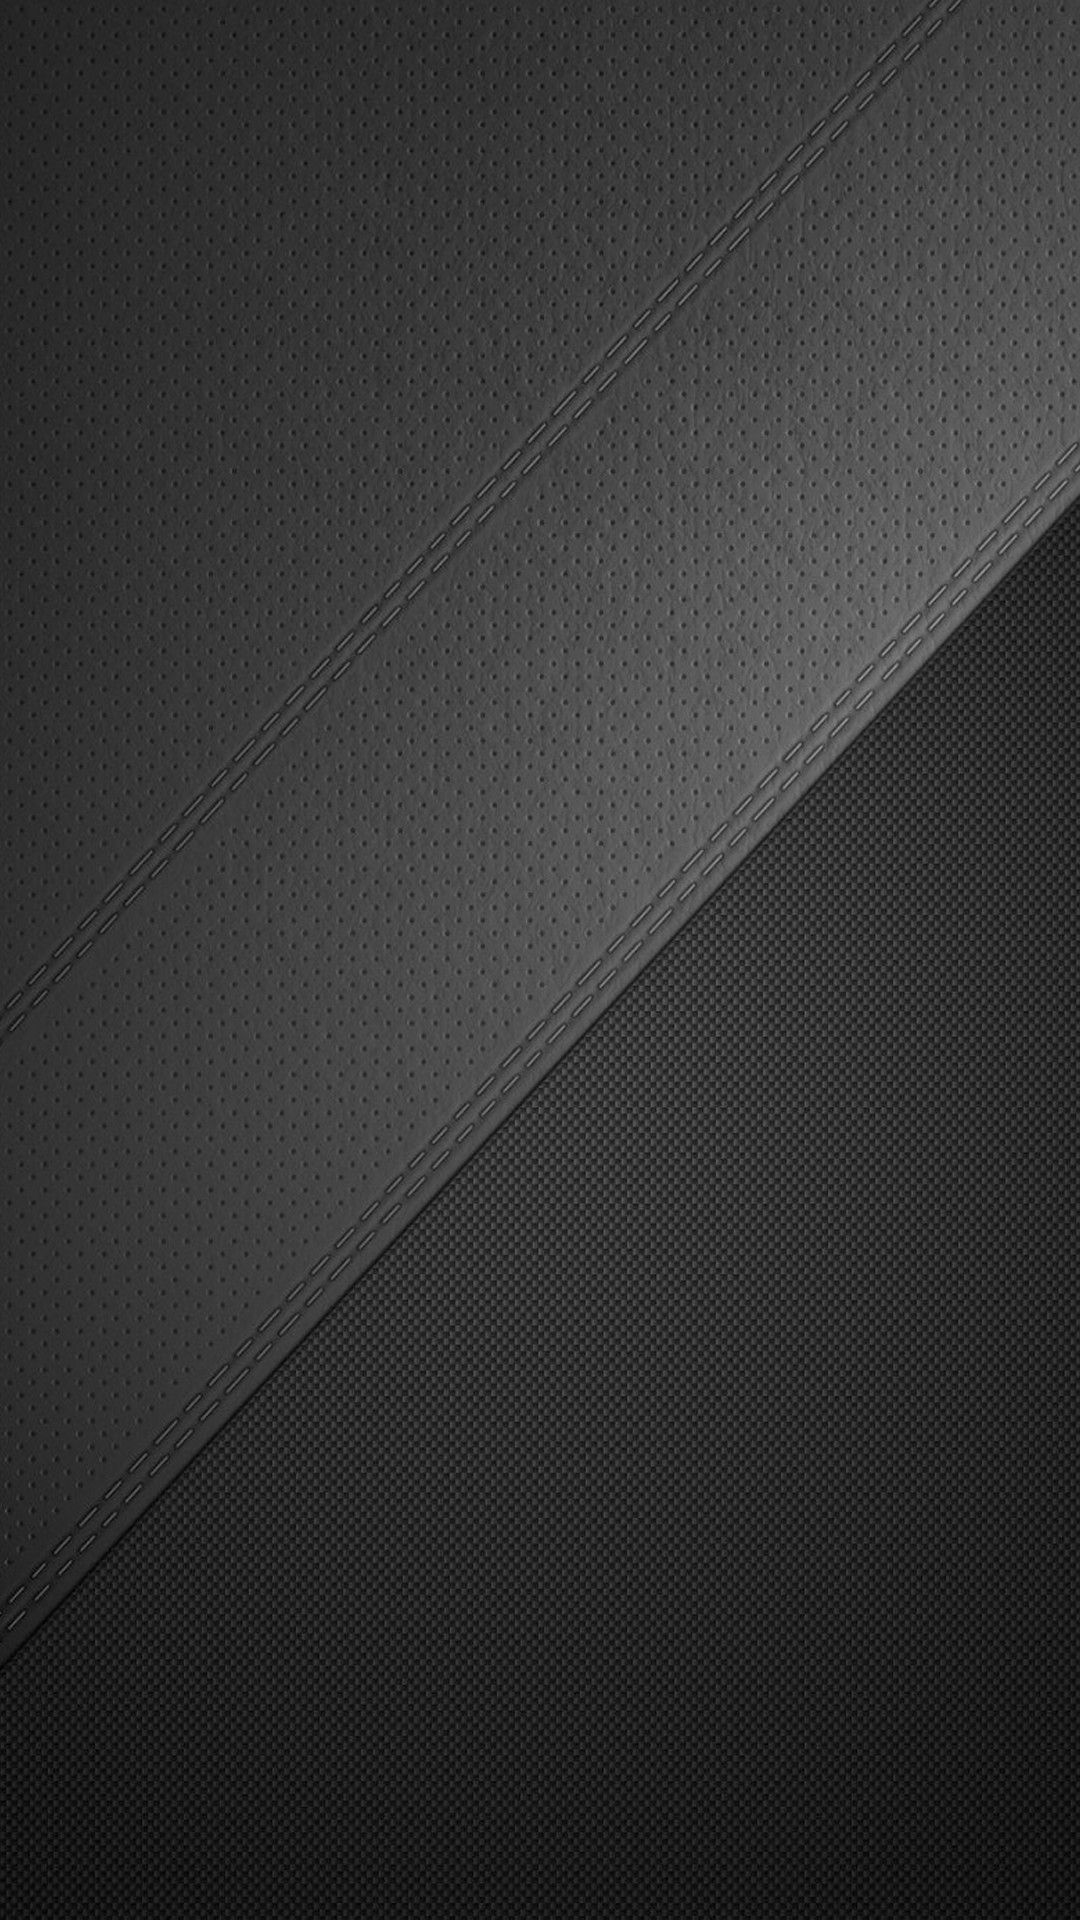 1080x1920 Black Texture Wallpapers (82+ background pictures)